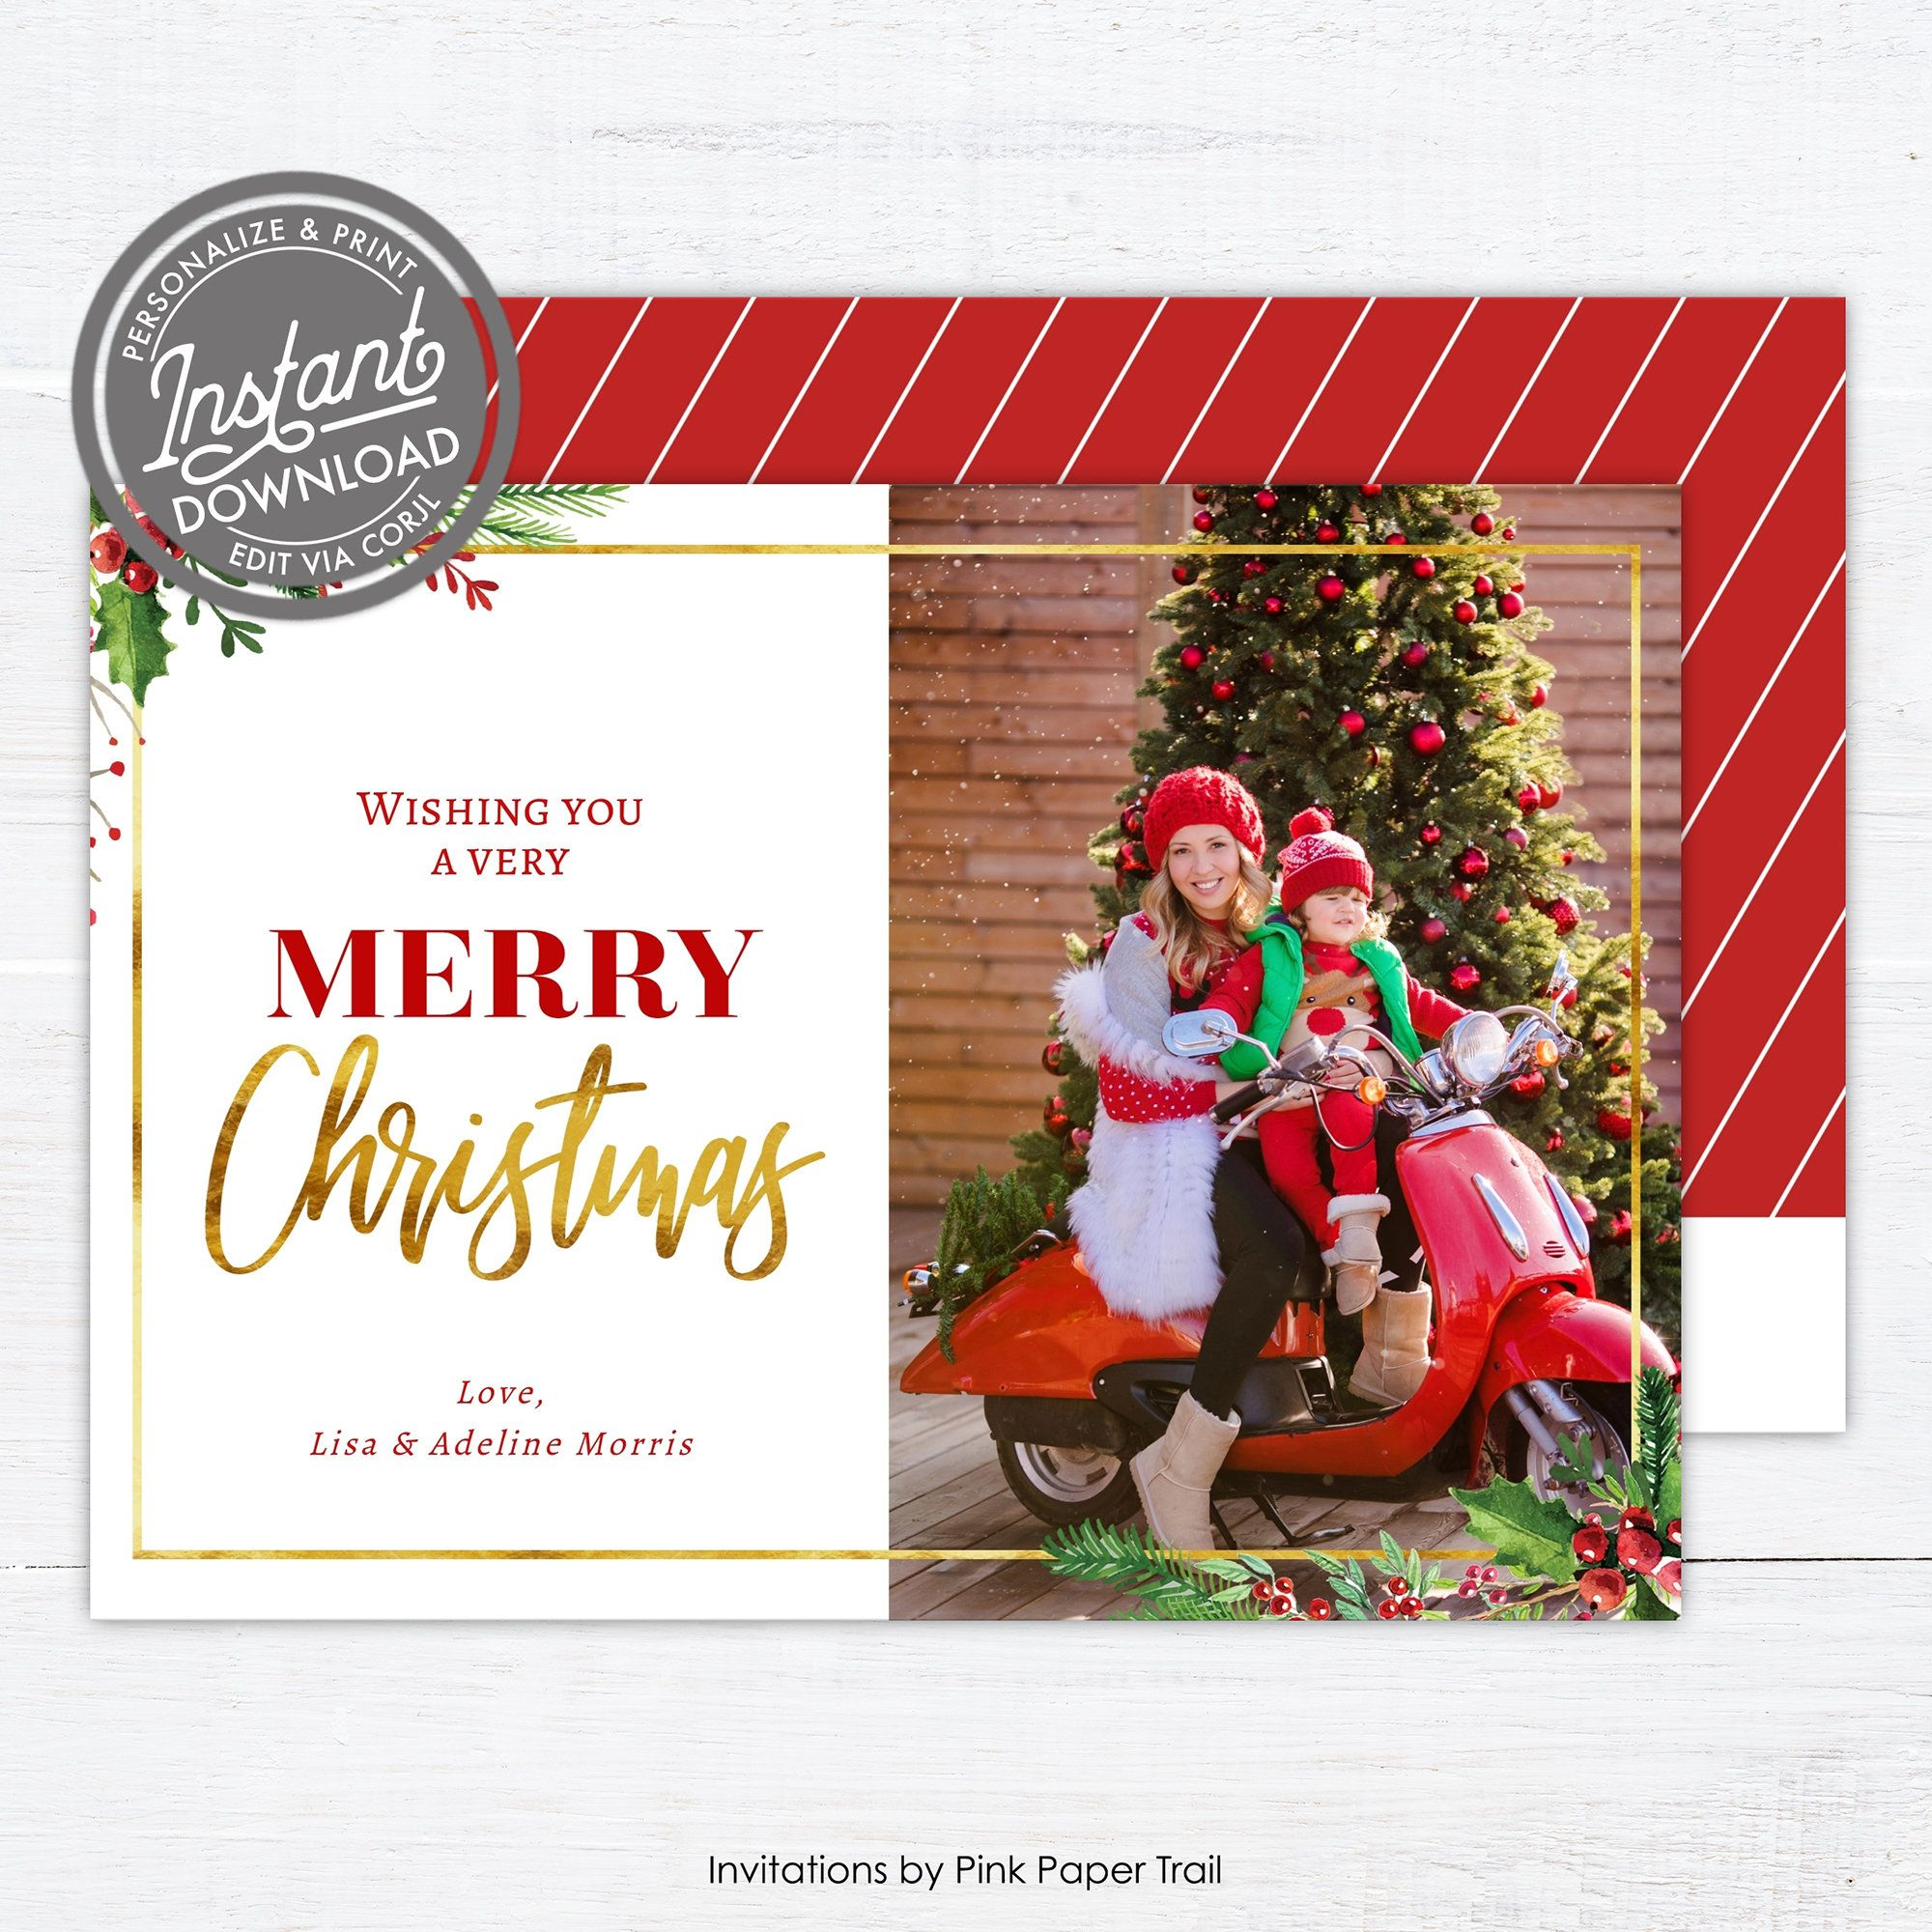 Editable Christmas Photo Card Template Printable Christmas Card With Photo Christmas Holly Holiday Photo Card Instant Access Hollies V1 1 In 2020 Christmas Photo Card Template Christmas Photo Cards Printable Christmas Cards